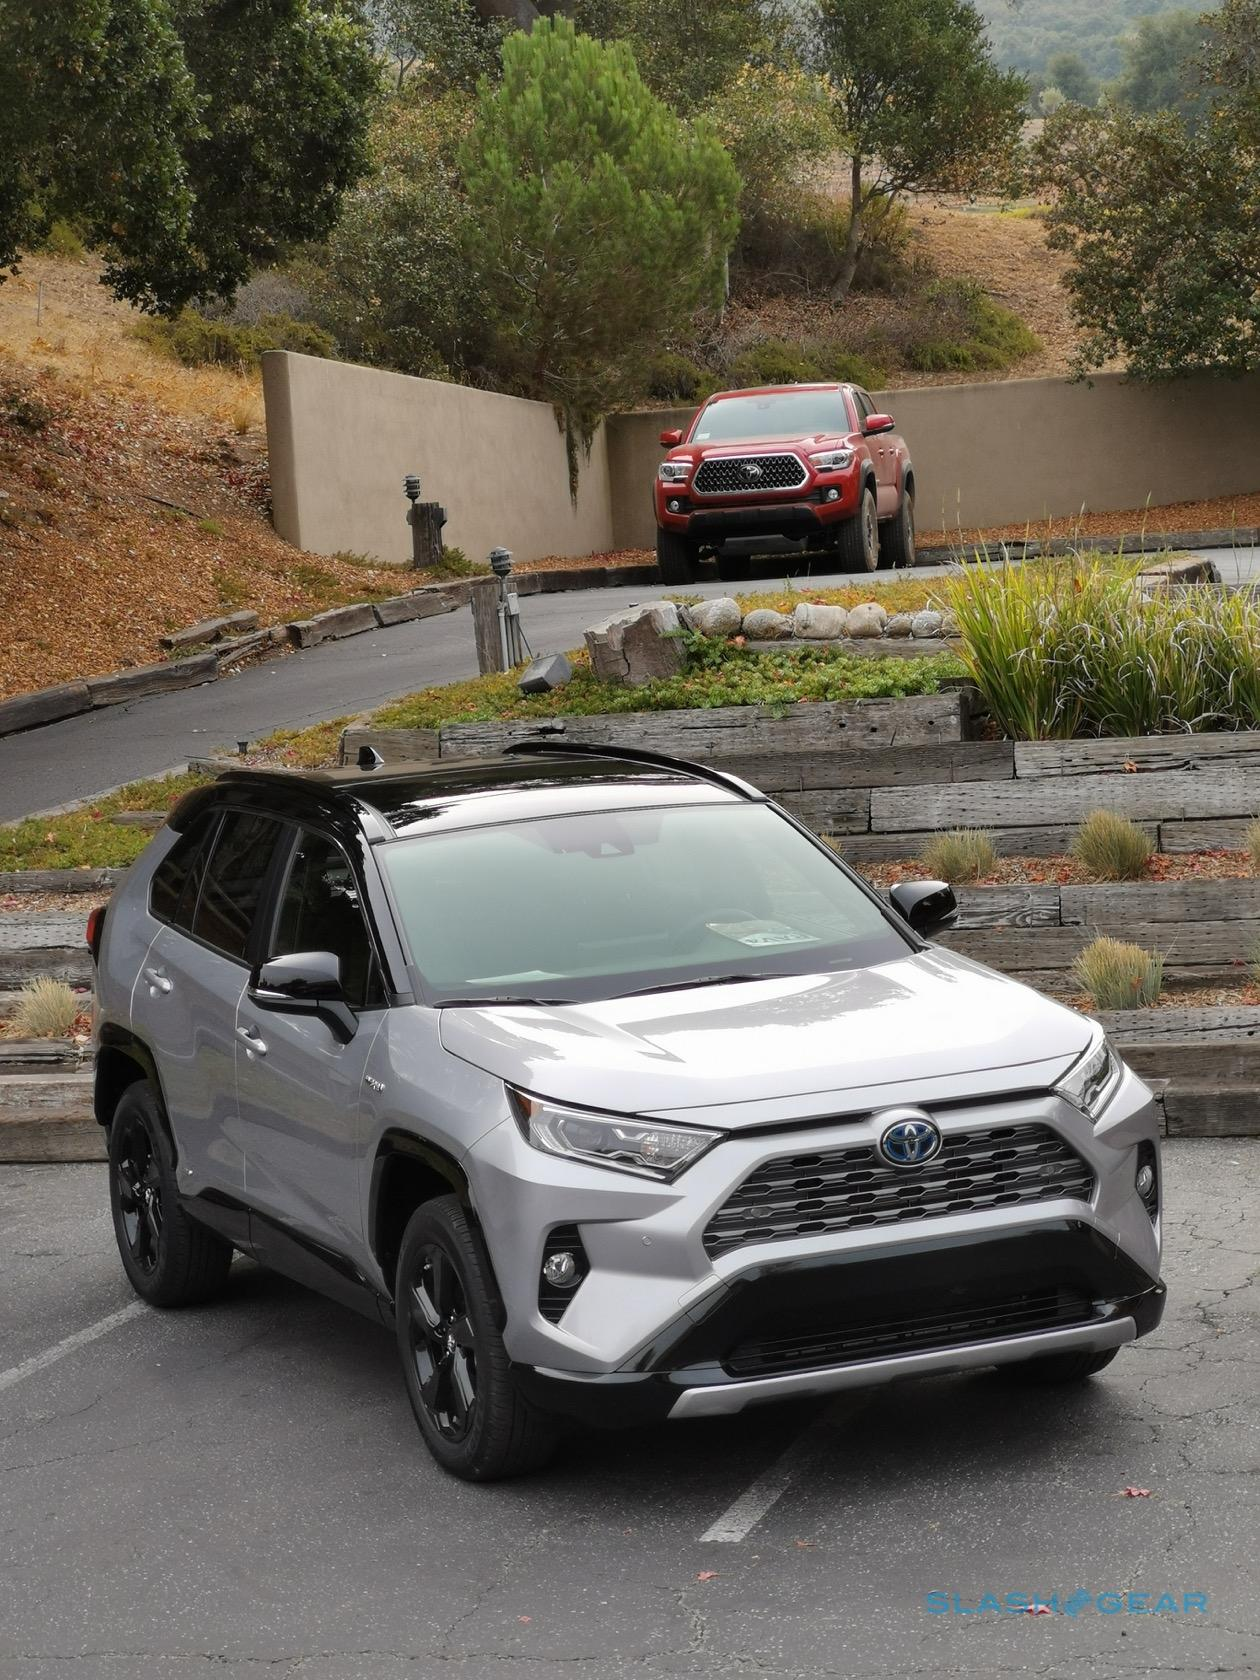 2019 Toyota RAV4 first drive review: Compact SUV makes ...